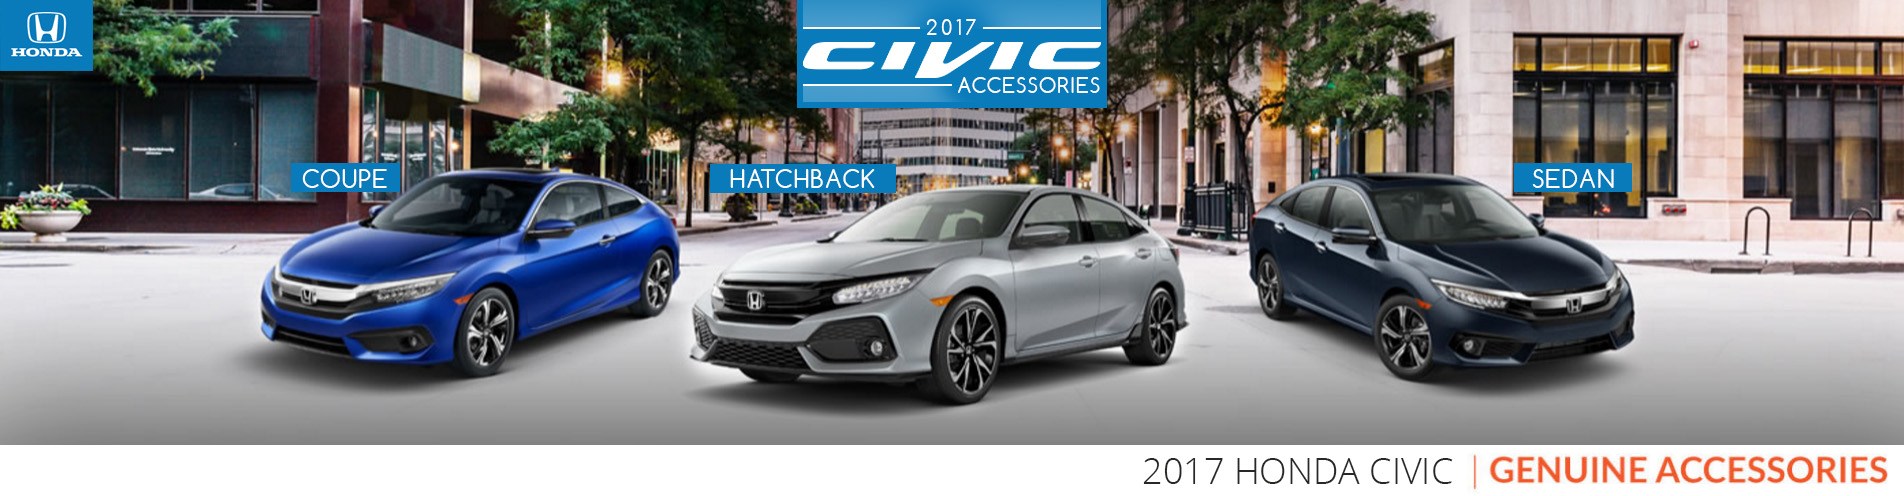 2017 Civic Honda Genuine Accessories, Coupe, Hatchback and Sedan